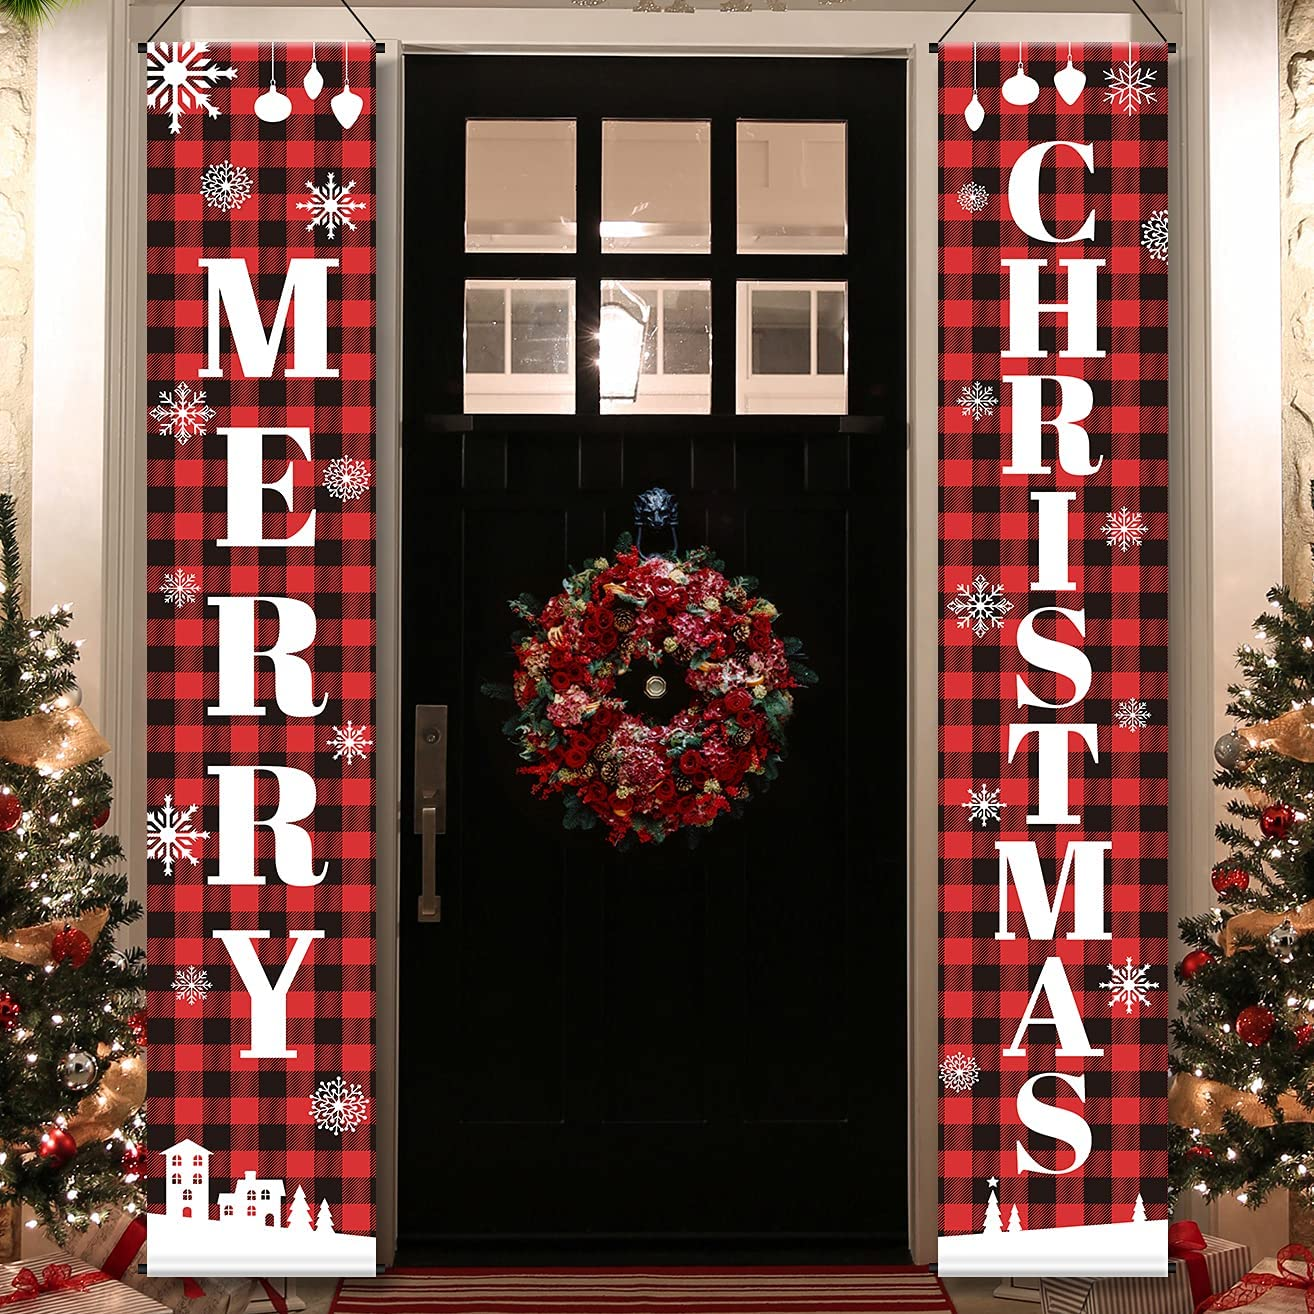 FROZZUR Christmas Xmas Porch Sign 2 Pack, Red Black Buffalo Plaid Decor Merry Christmas Door Banners Hanging Decorations for Home Yard Indoor Outdoor Front Door Wall, 13